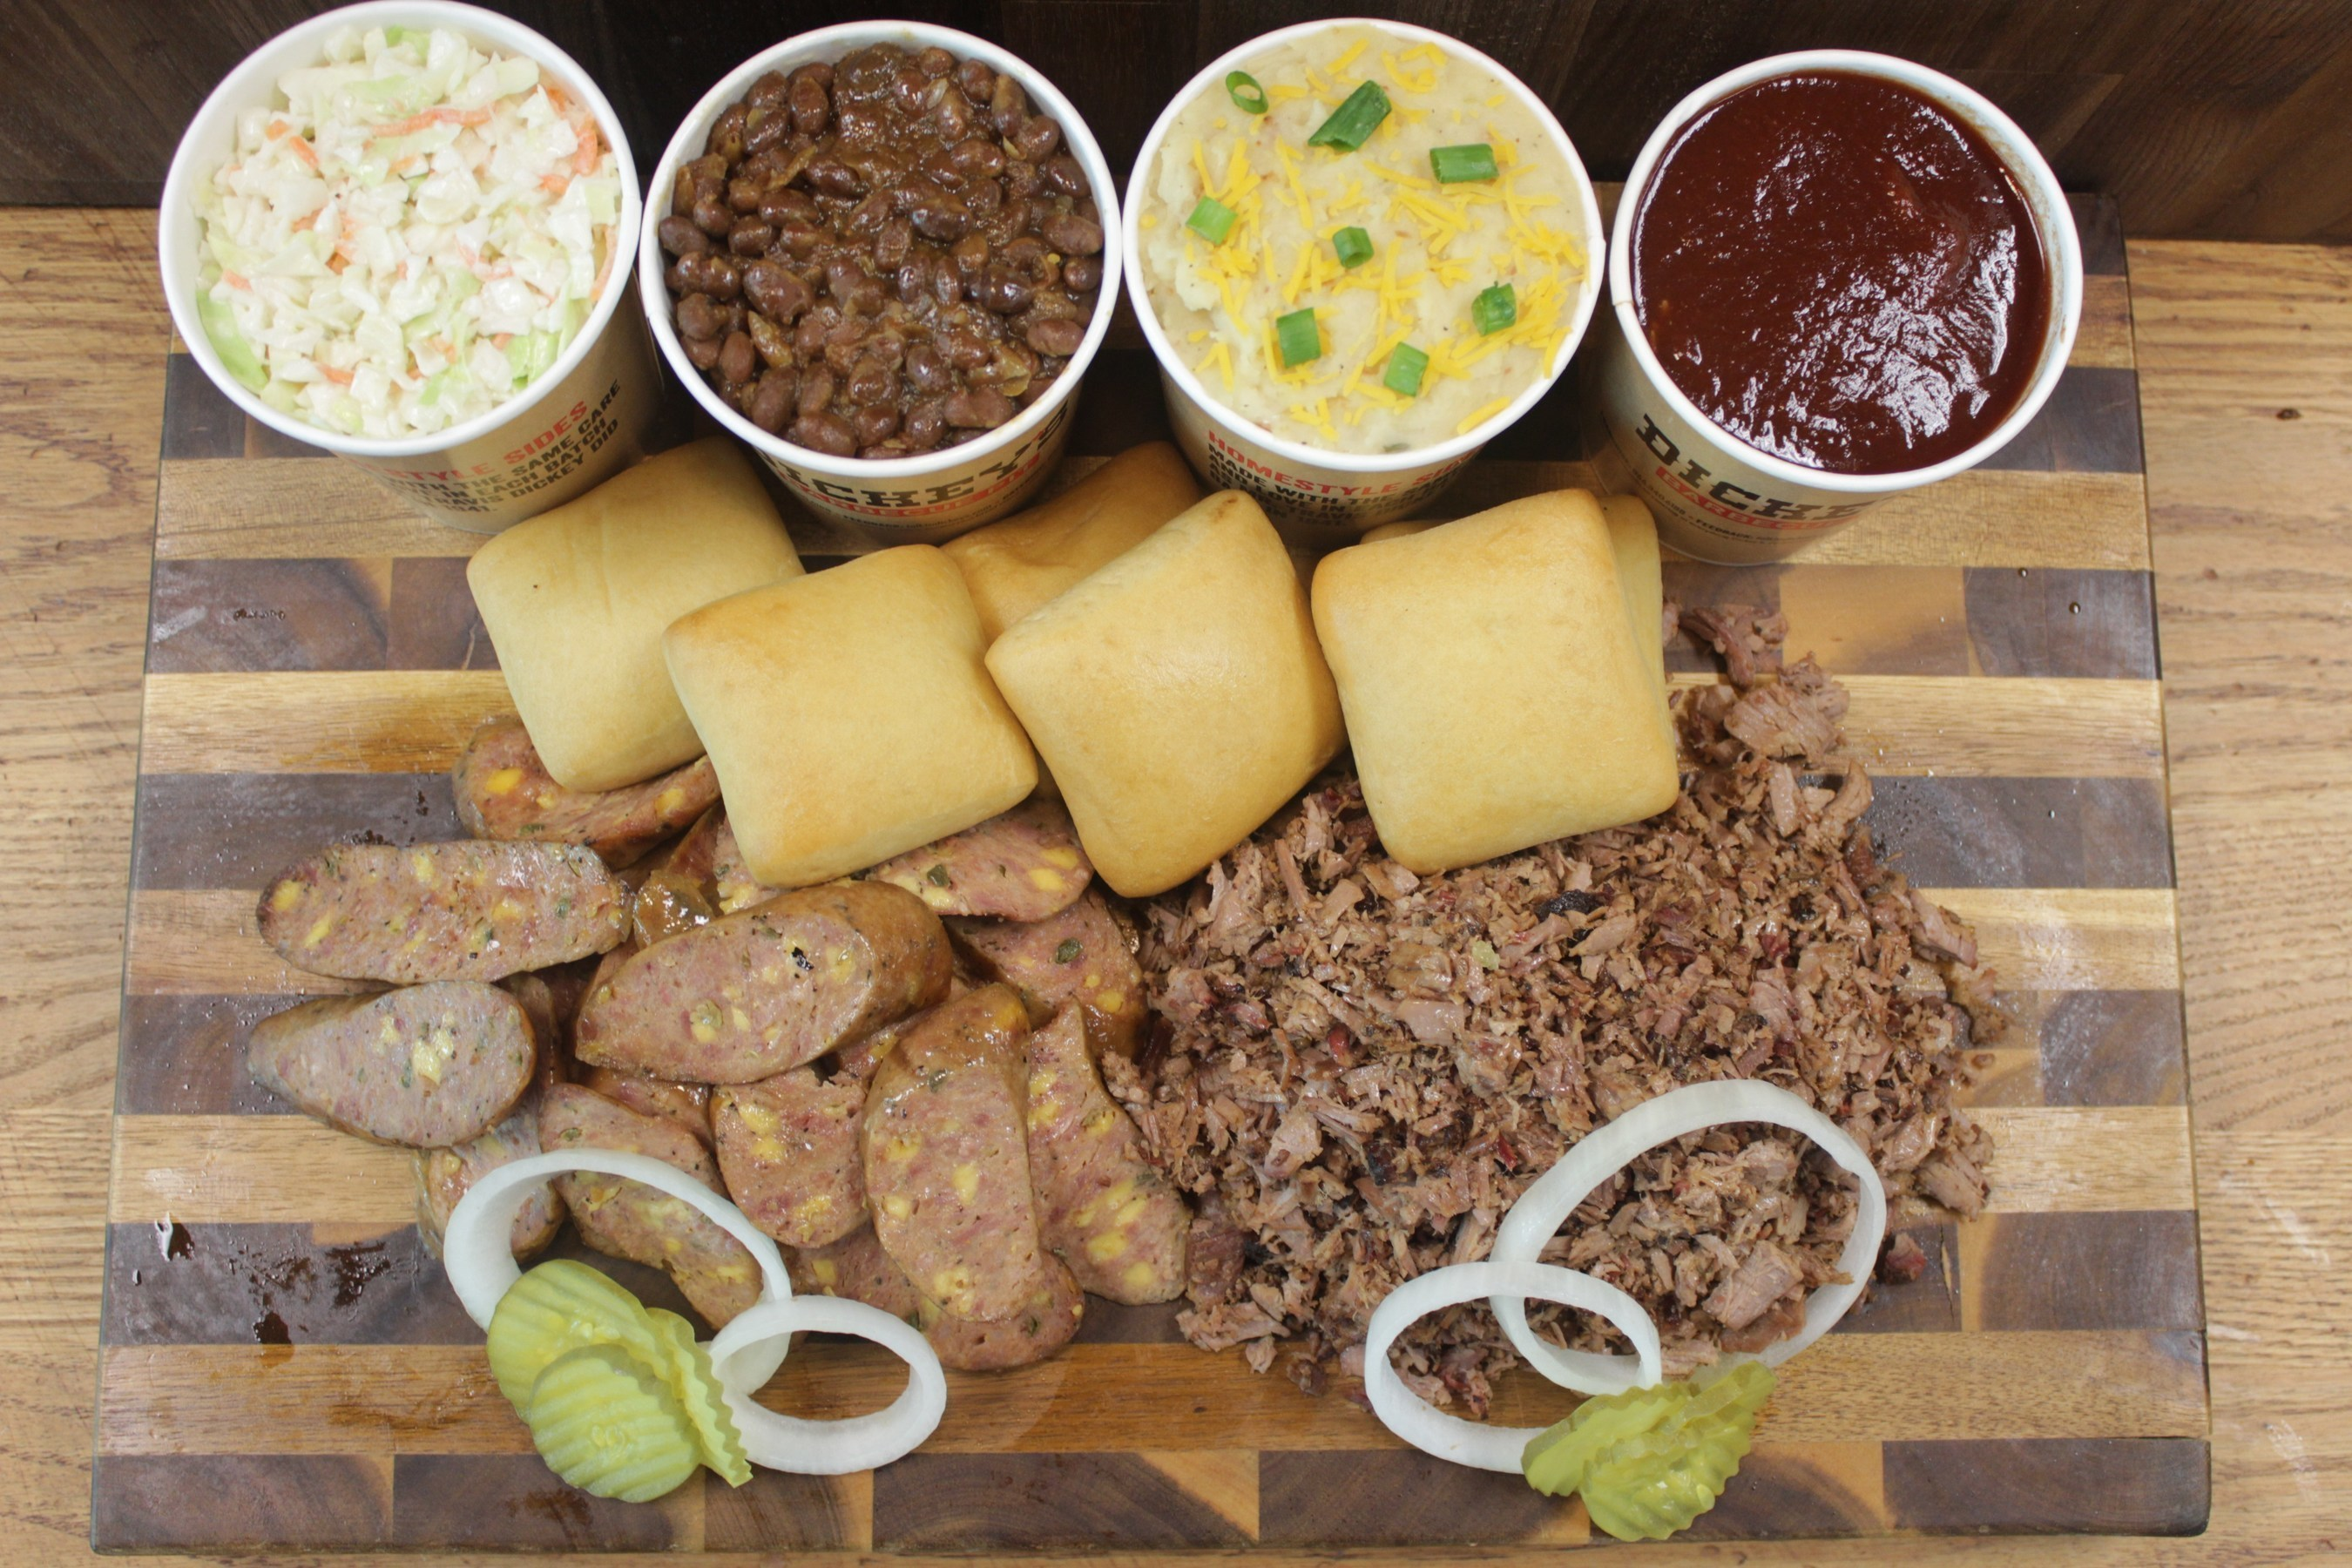 Dickey's Barbecue Pit opens in Dothan Thursday with giveaways and specials